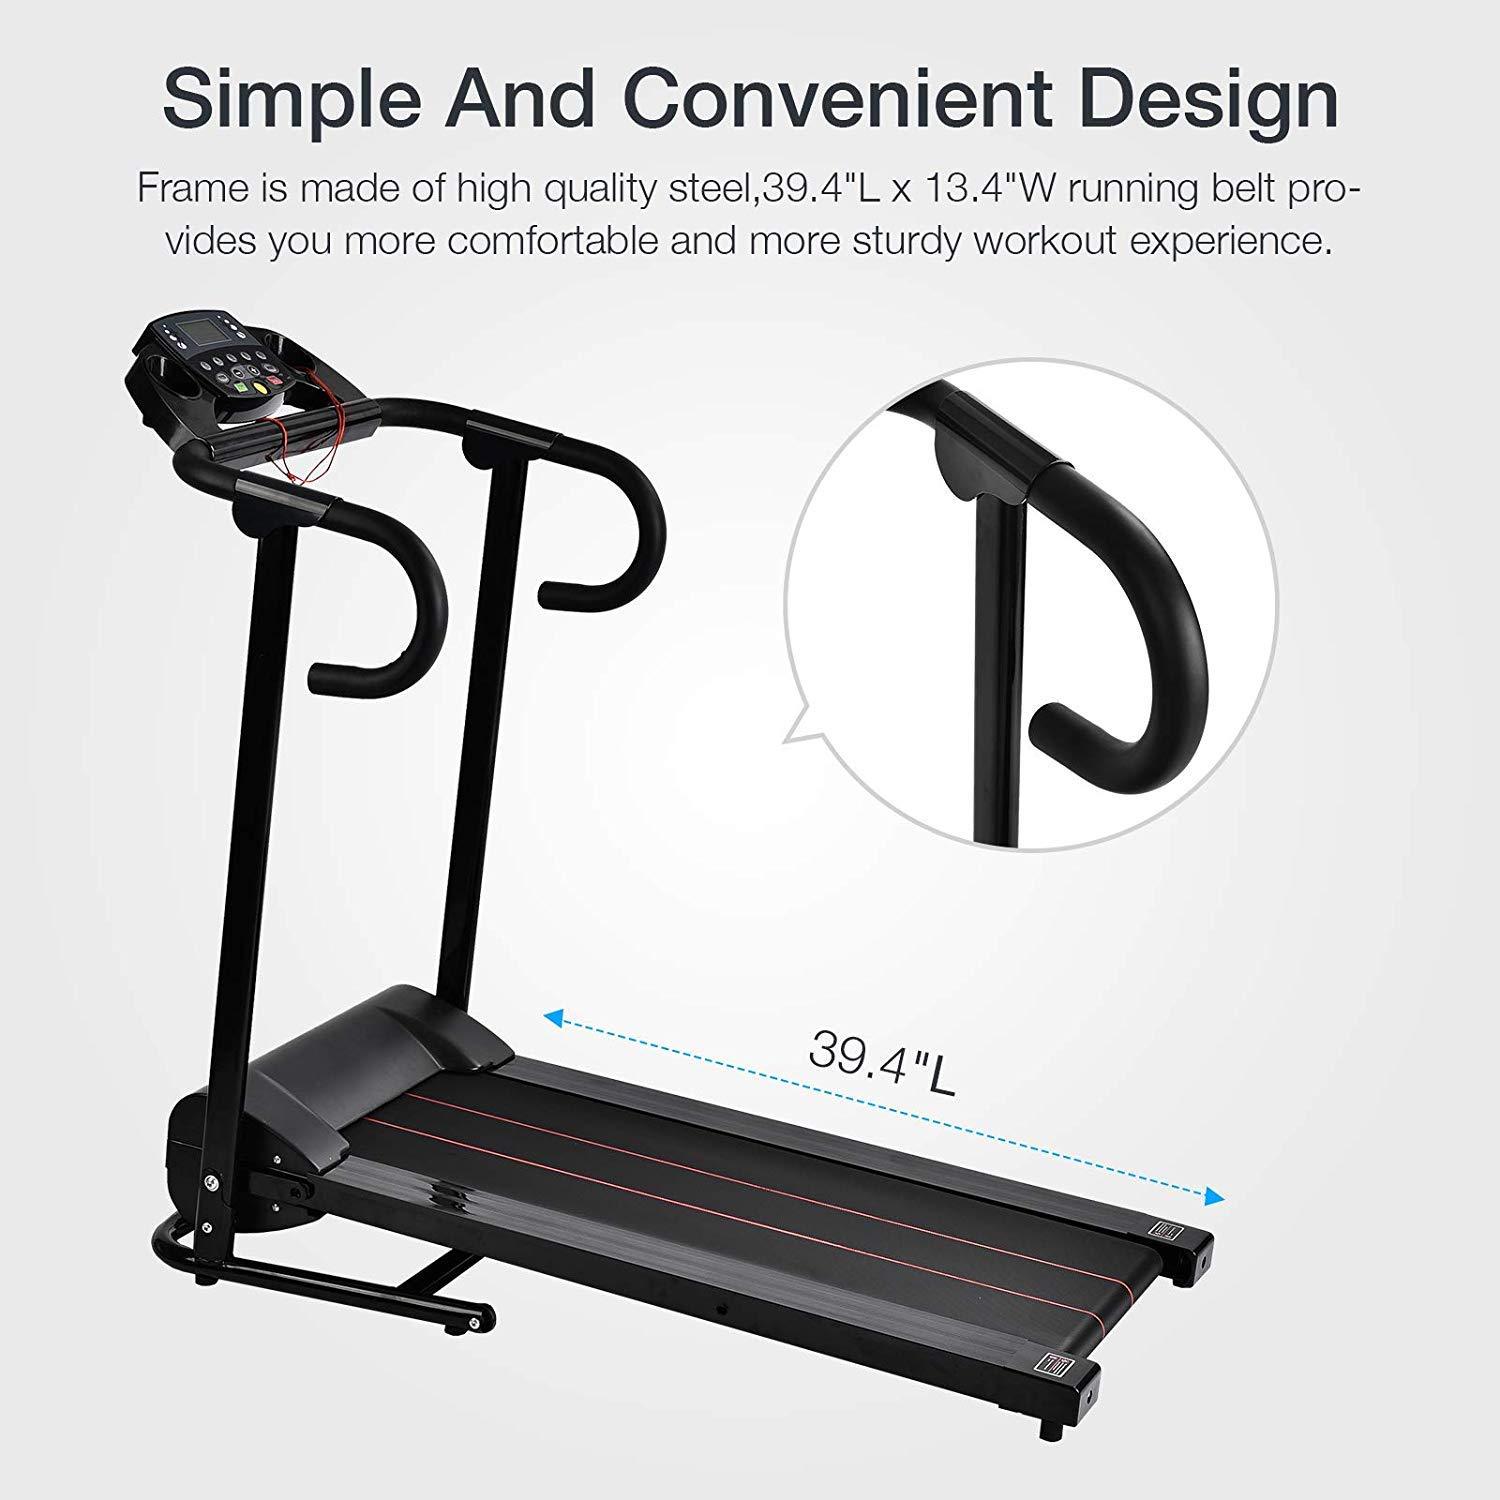 Murtisol 1100W Folding Treadmill Electric Walking Running Exercise Fitness Machine with LCD Display Easy Control Home Gym by Murtisol (Image #6)